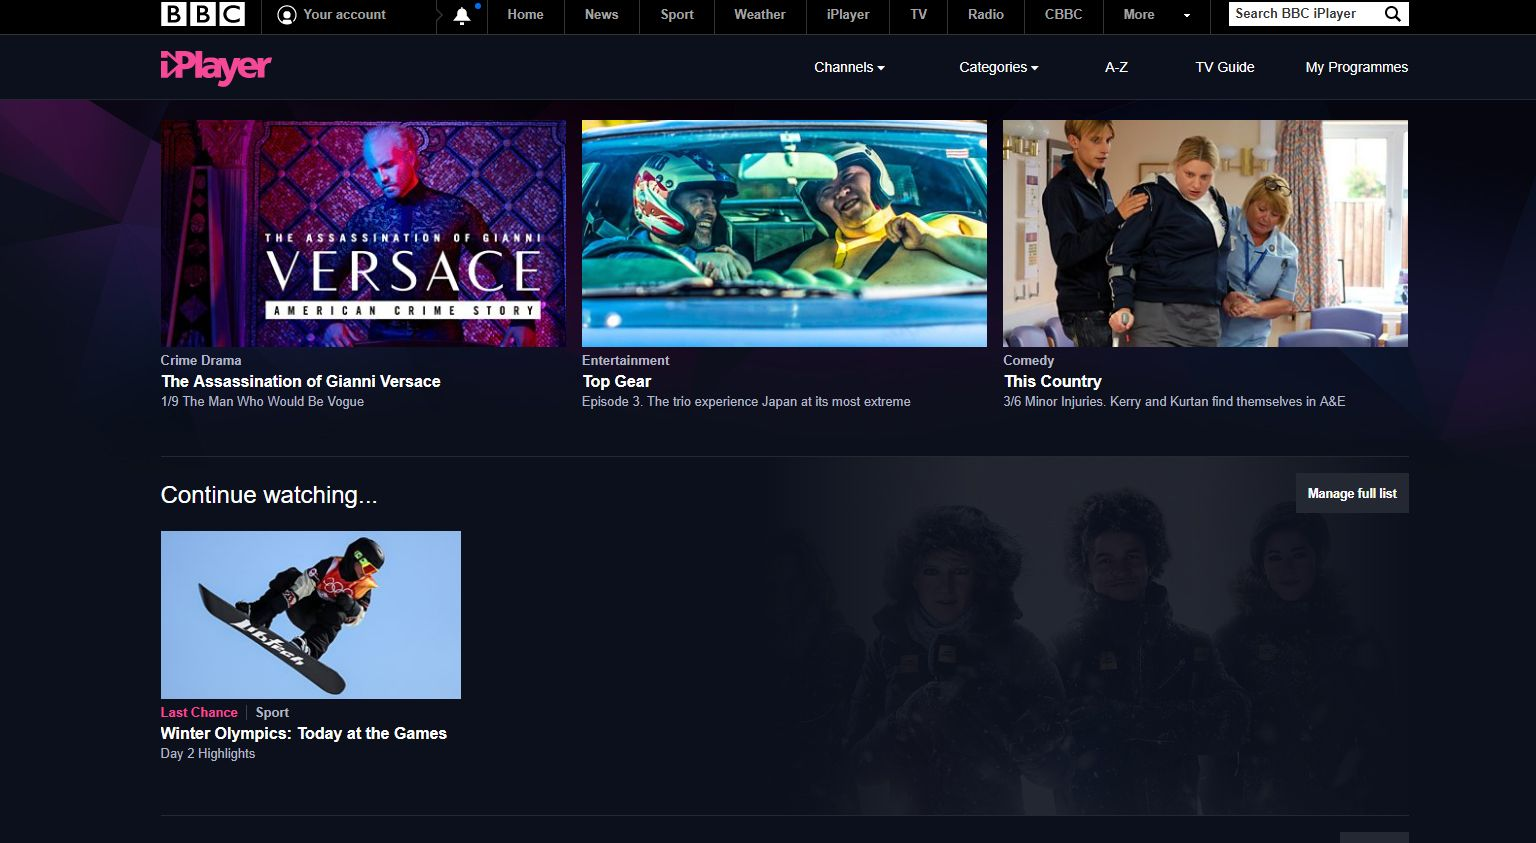 e98d4e05e9963778a294562b45a9c87b - Vpn Not Working For Bbc Iplayer